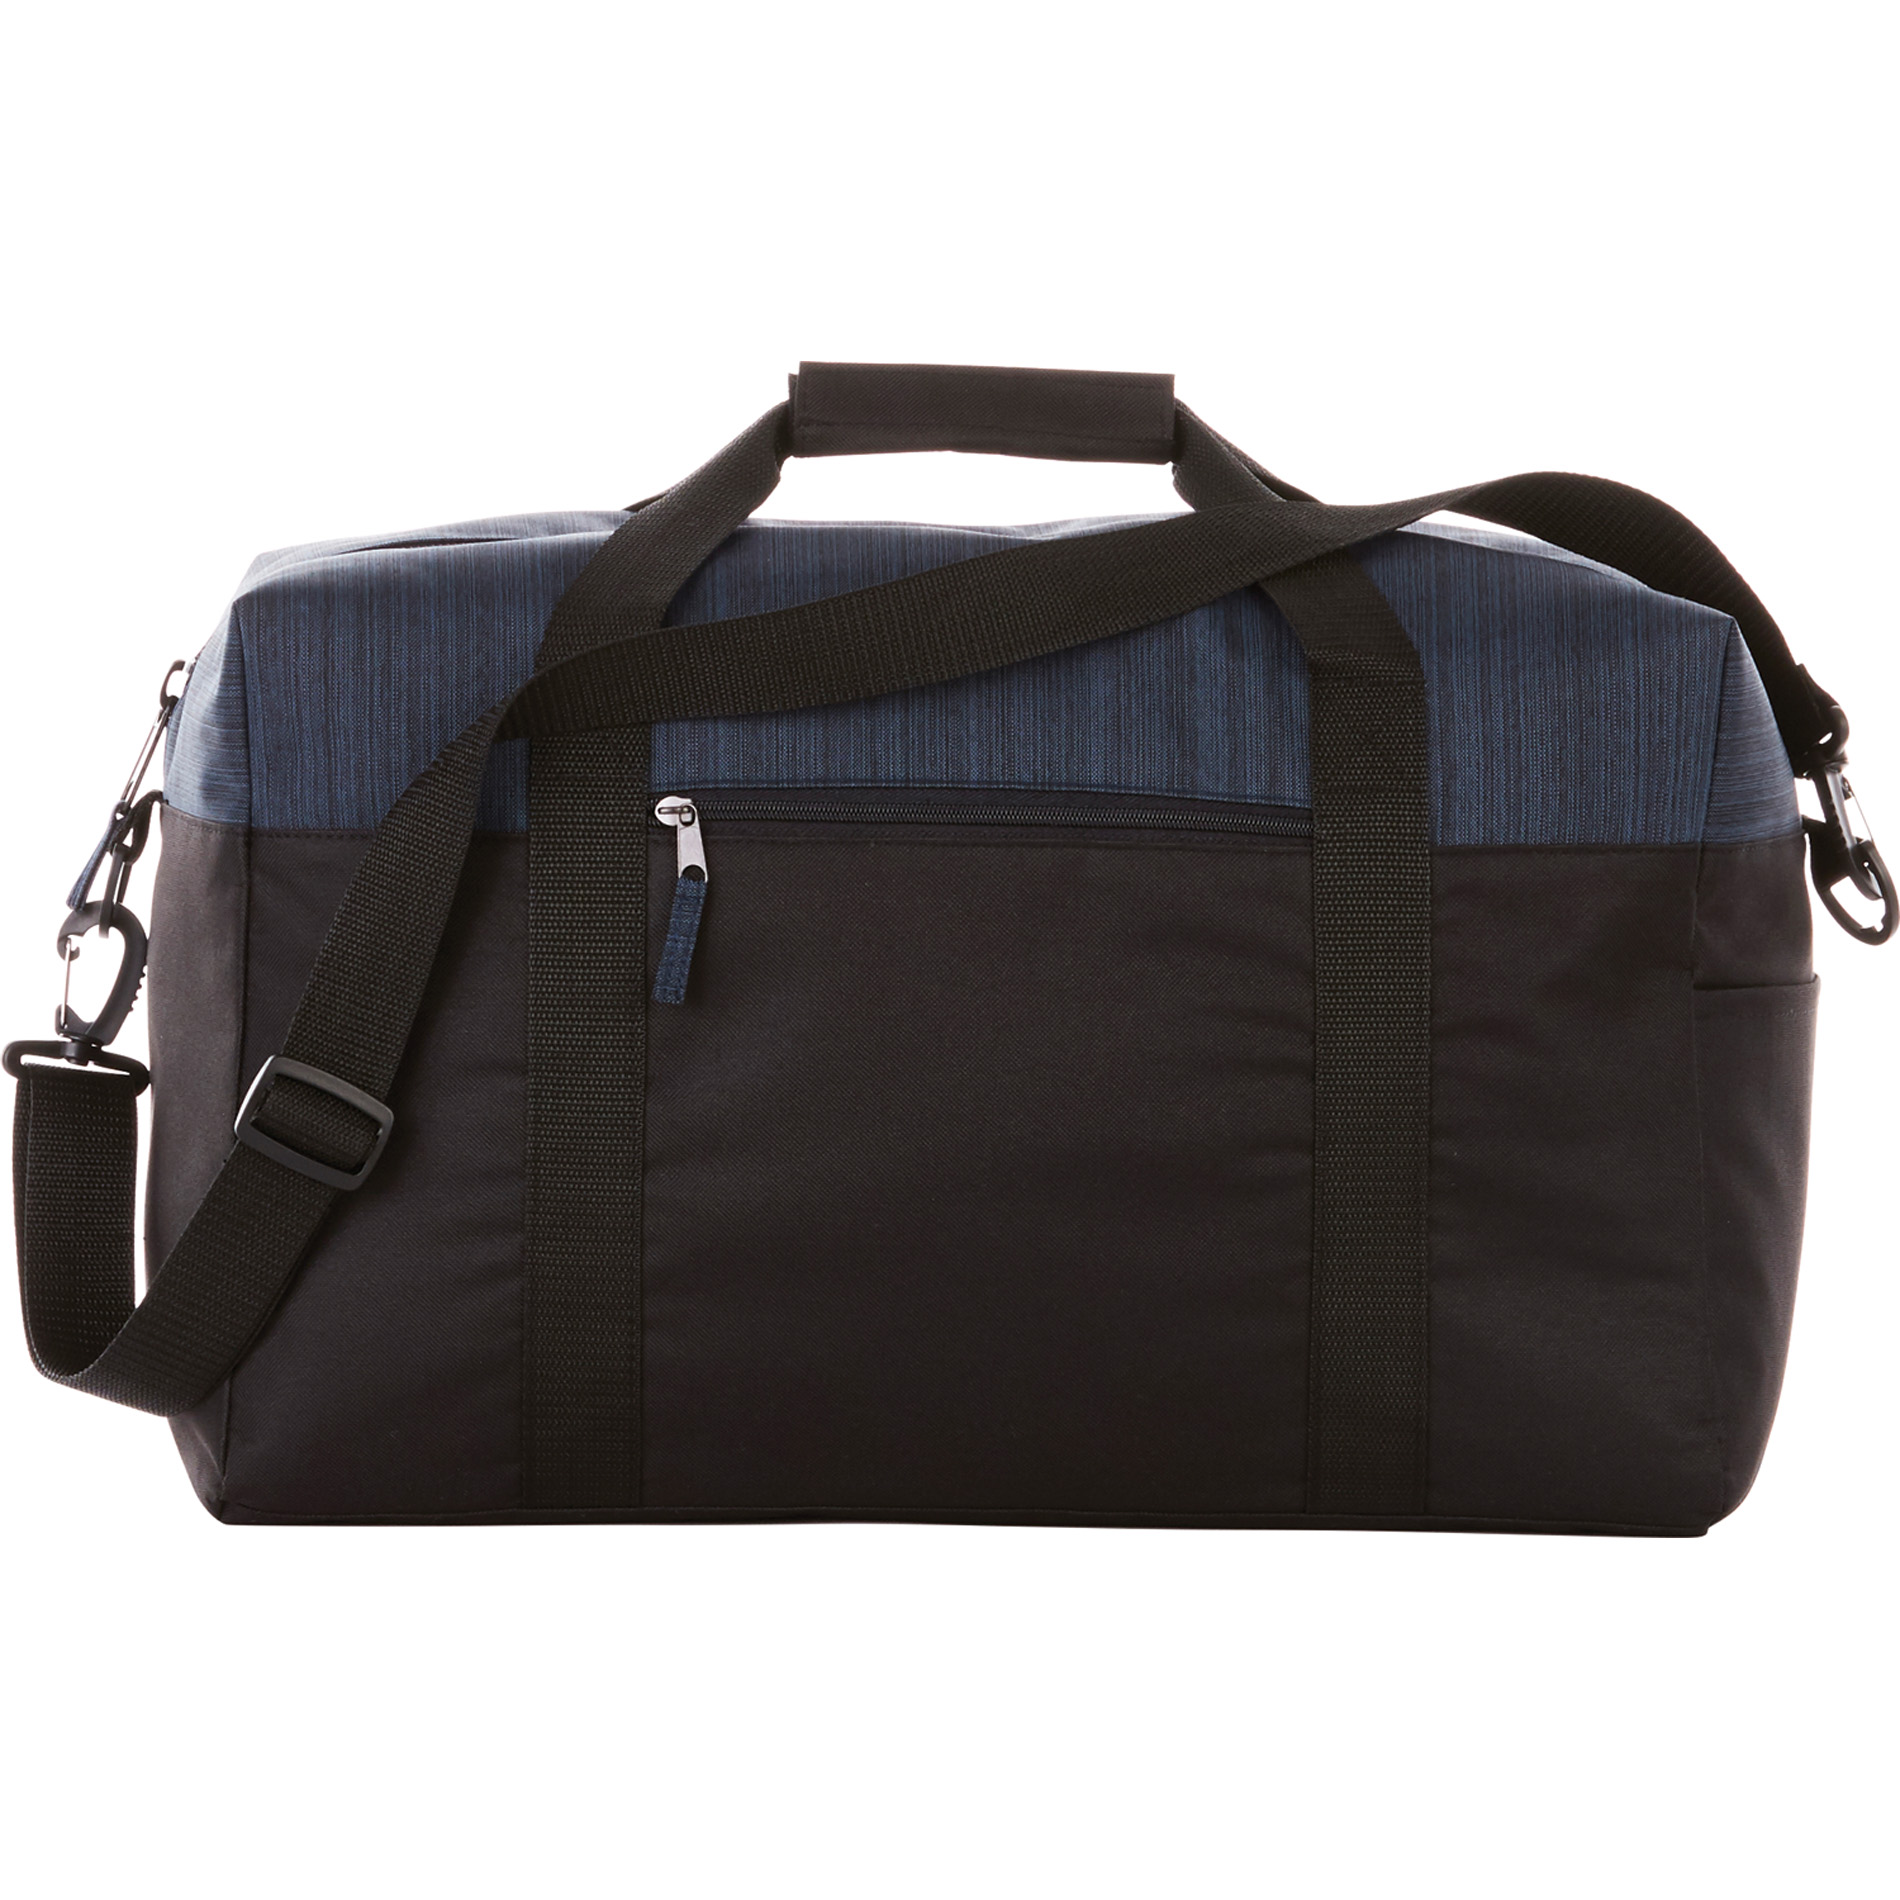 "LEEDS 4700-40 - Two Tone Heather 18"" Duffel Bag"